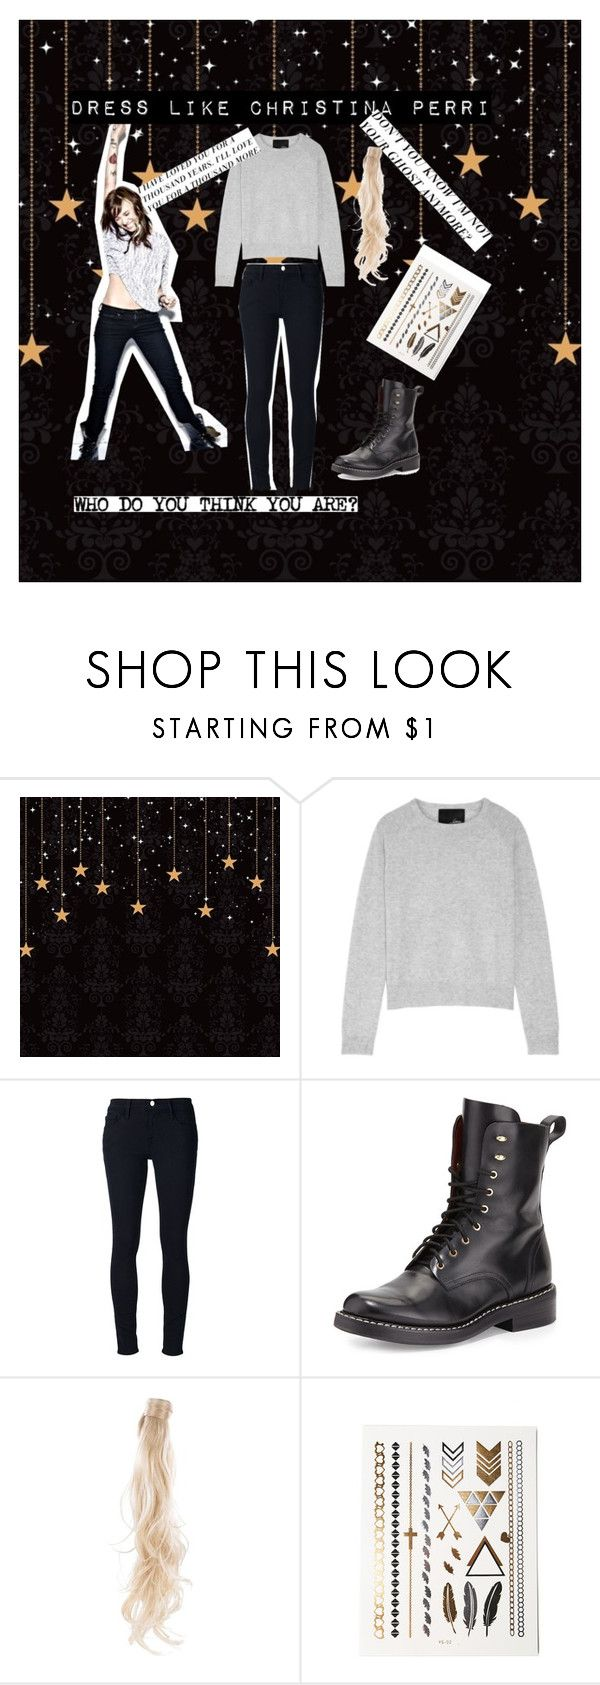 """""""Dress Like Christina Perri"""" by queengalaxy ❤ liked on Polyvore featuring Line, Frame, rag & bone and Rapunzel Of Sweden"""